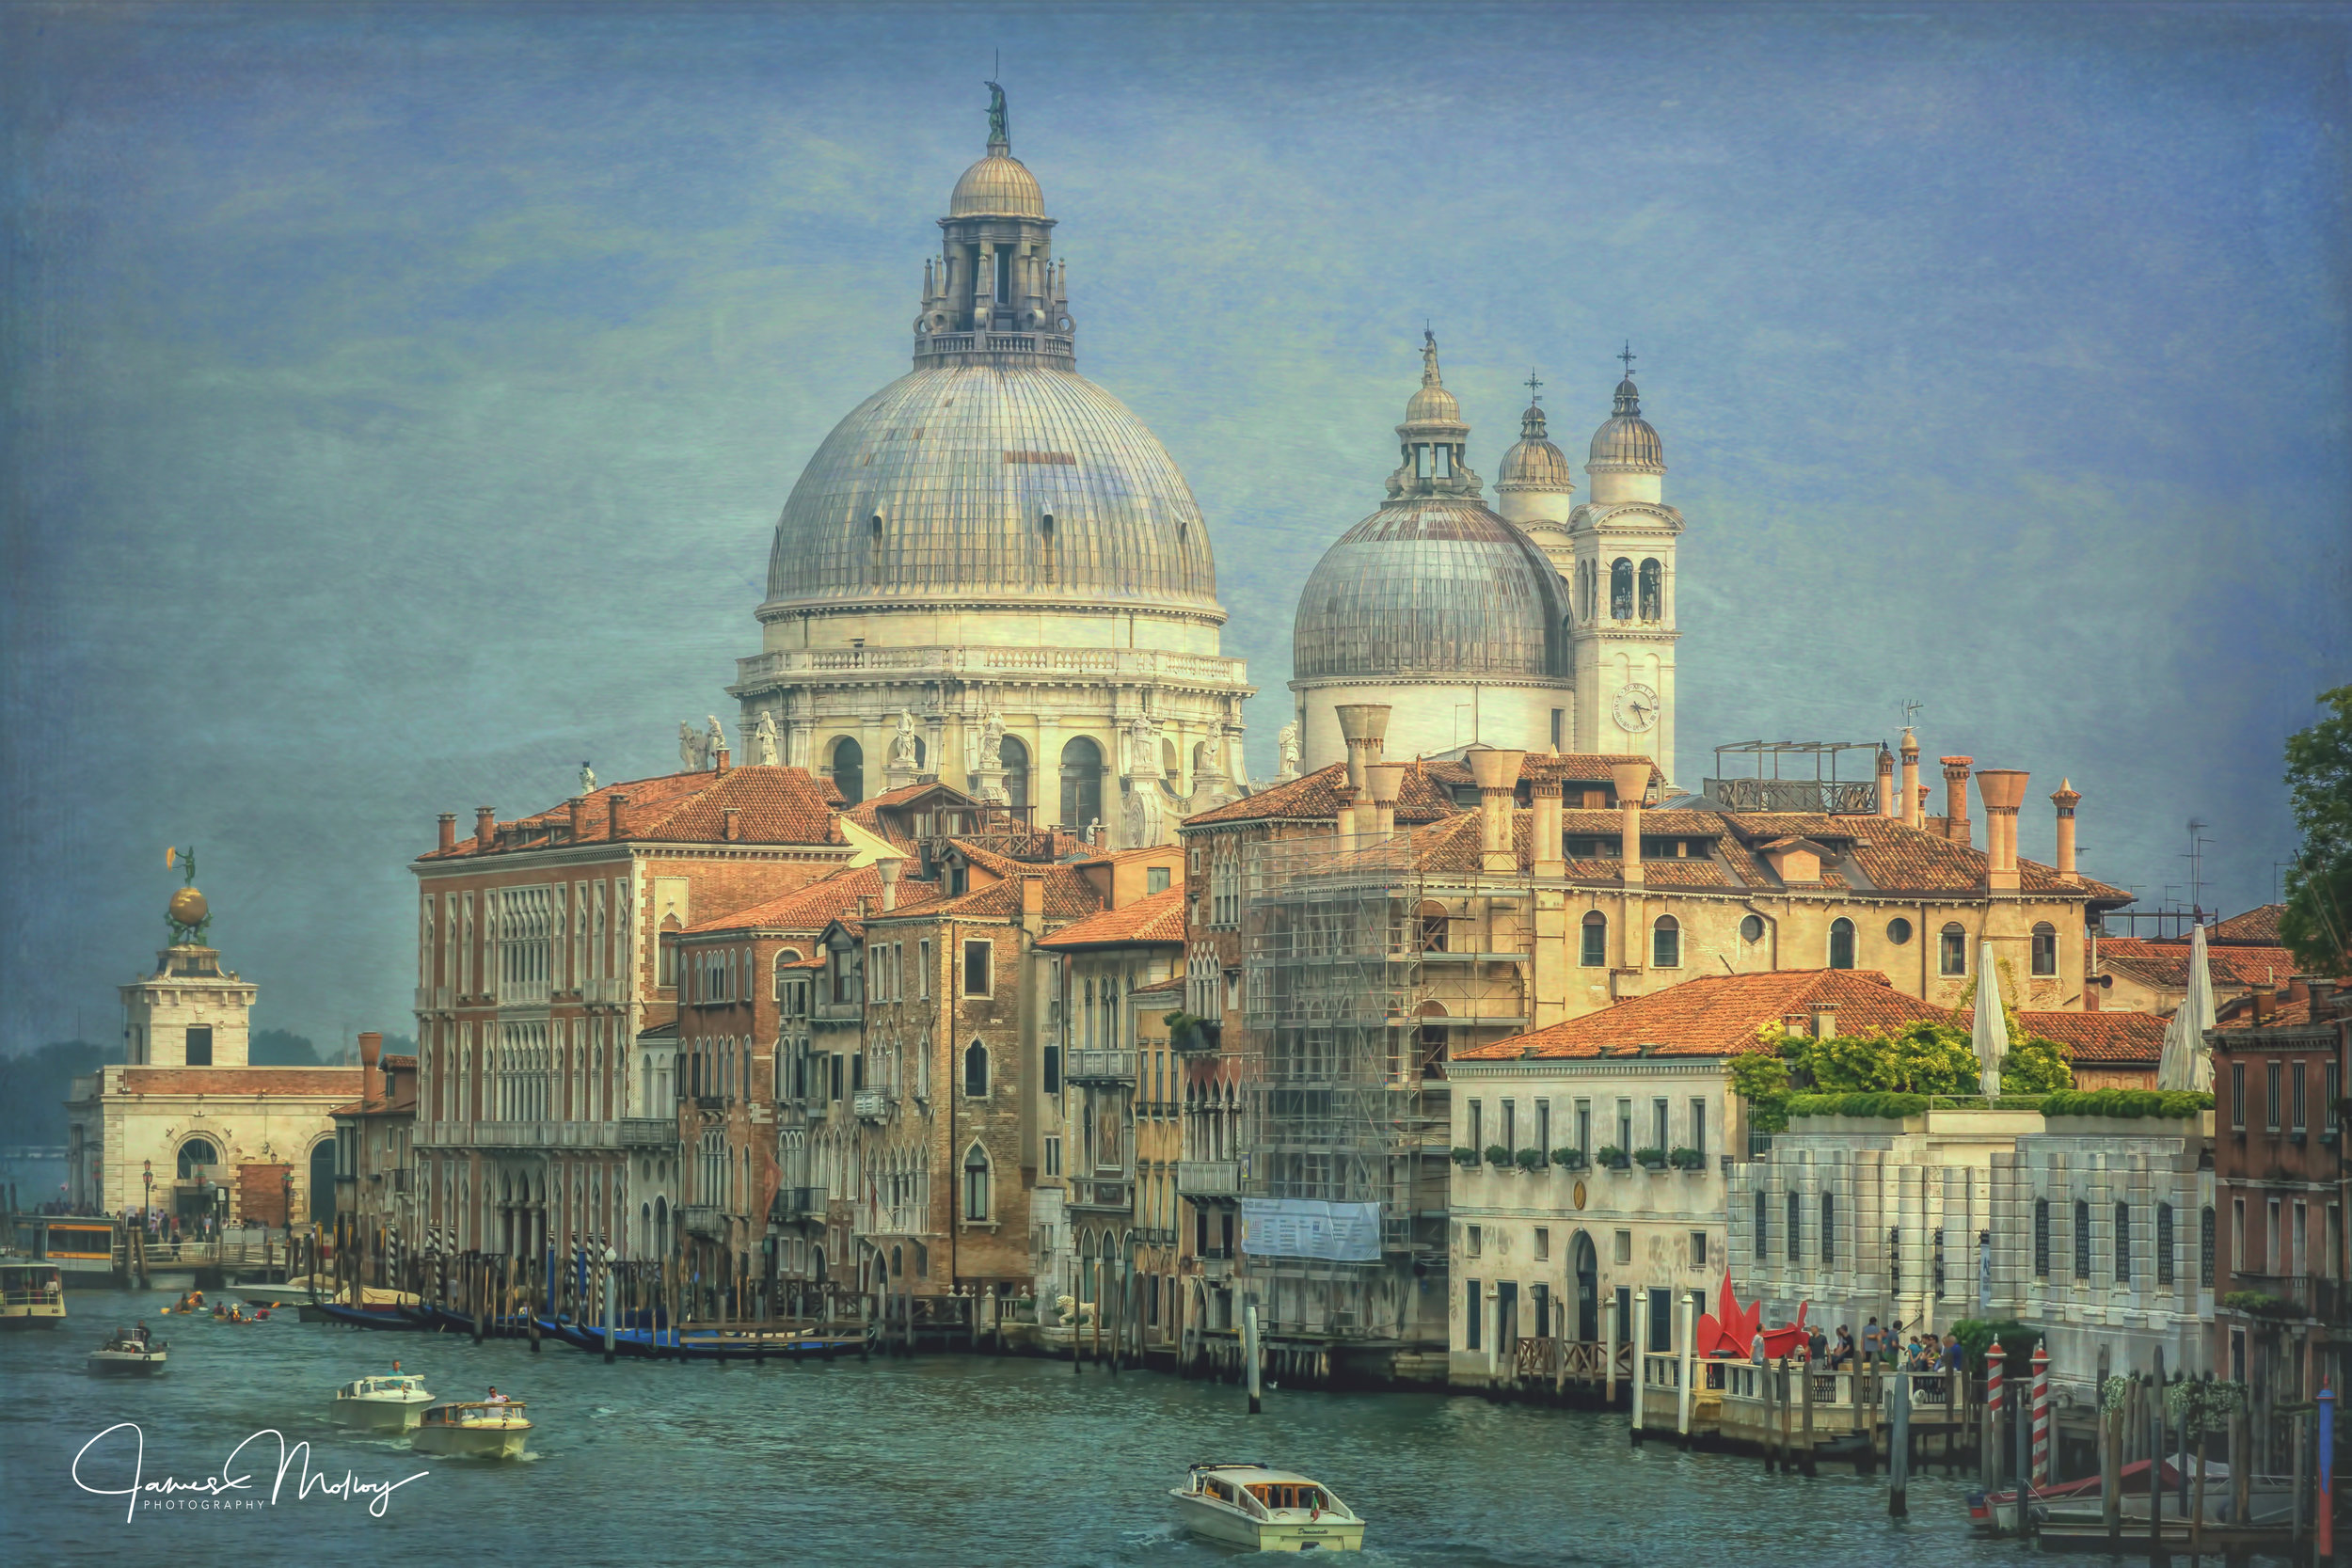 Santa Maria della Salute - Nikon D7100, 1/250 @ f/11, ISO 200, 85mm - An average photograph until I added a texture layer. This photo has been shown in a local gallery.